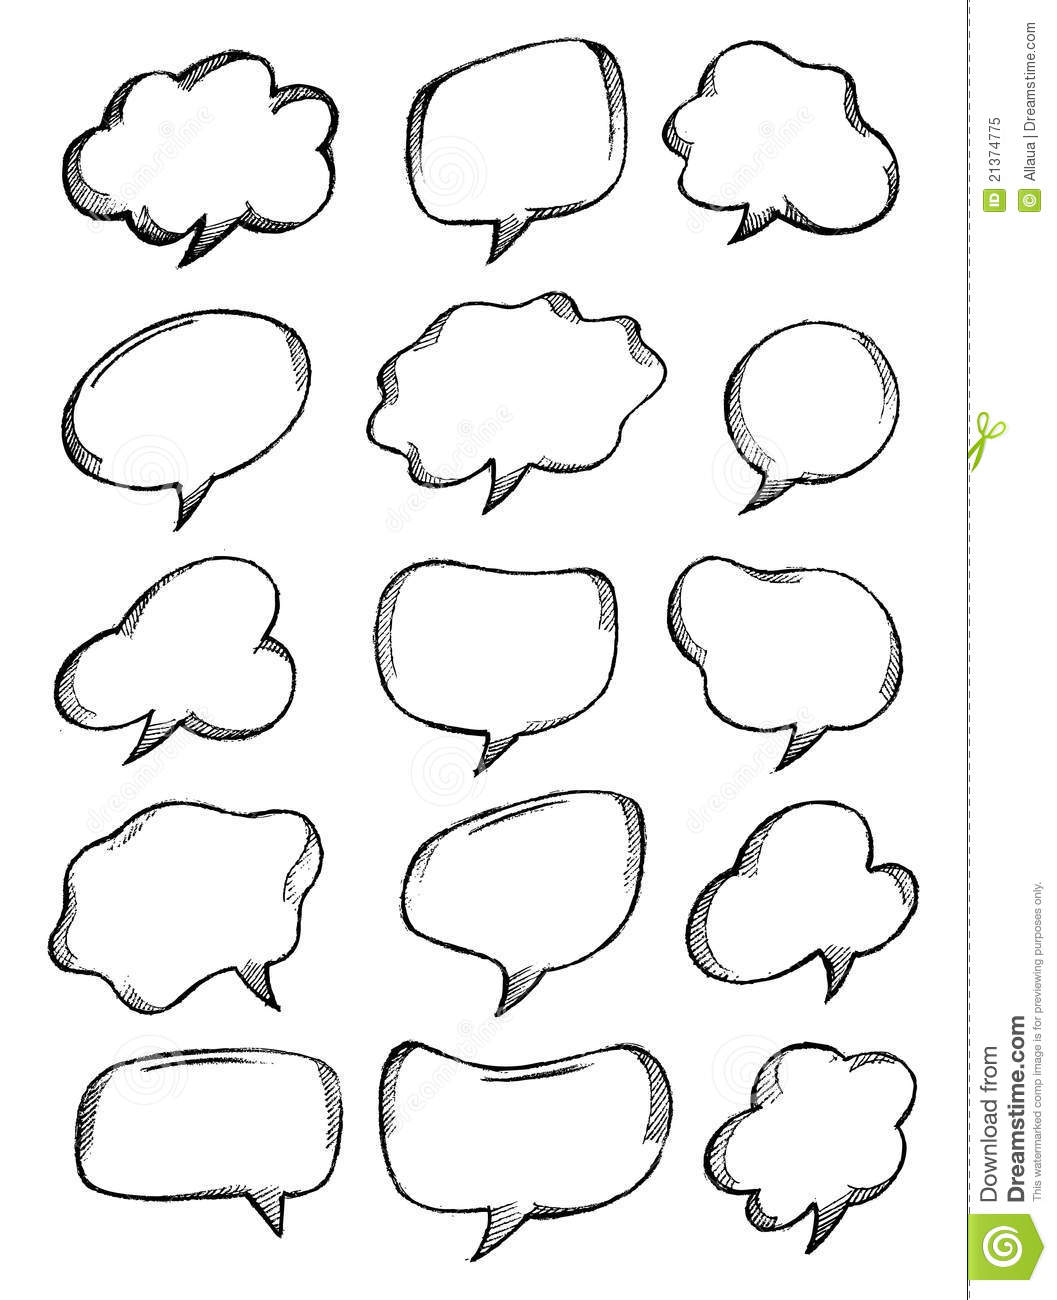 Speech Bubble Sketch Royalty Free Stock Photo